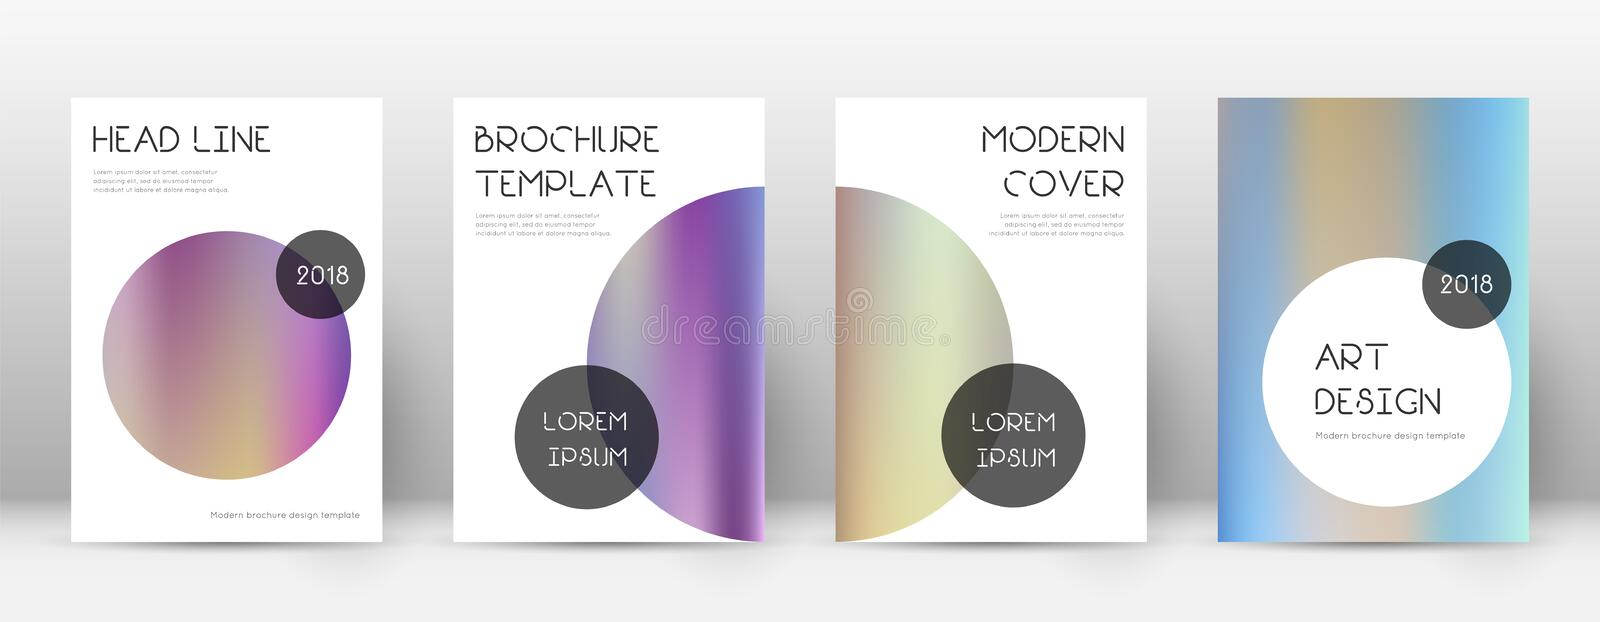 Flyer layout. Trendy fancy template for Brochure, Annual Report, Magazine, Poster, Corporate Presentation, Portfolio, Flyer. Beauteous color gradients cover stock illustration